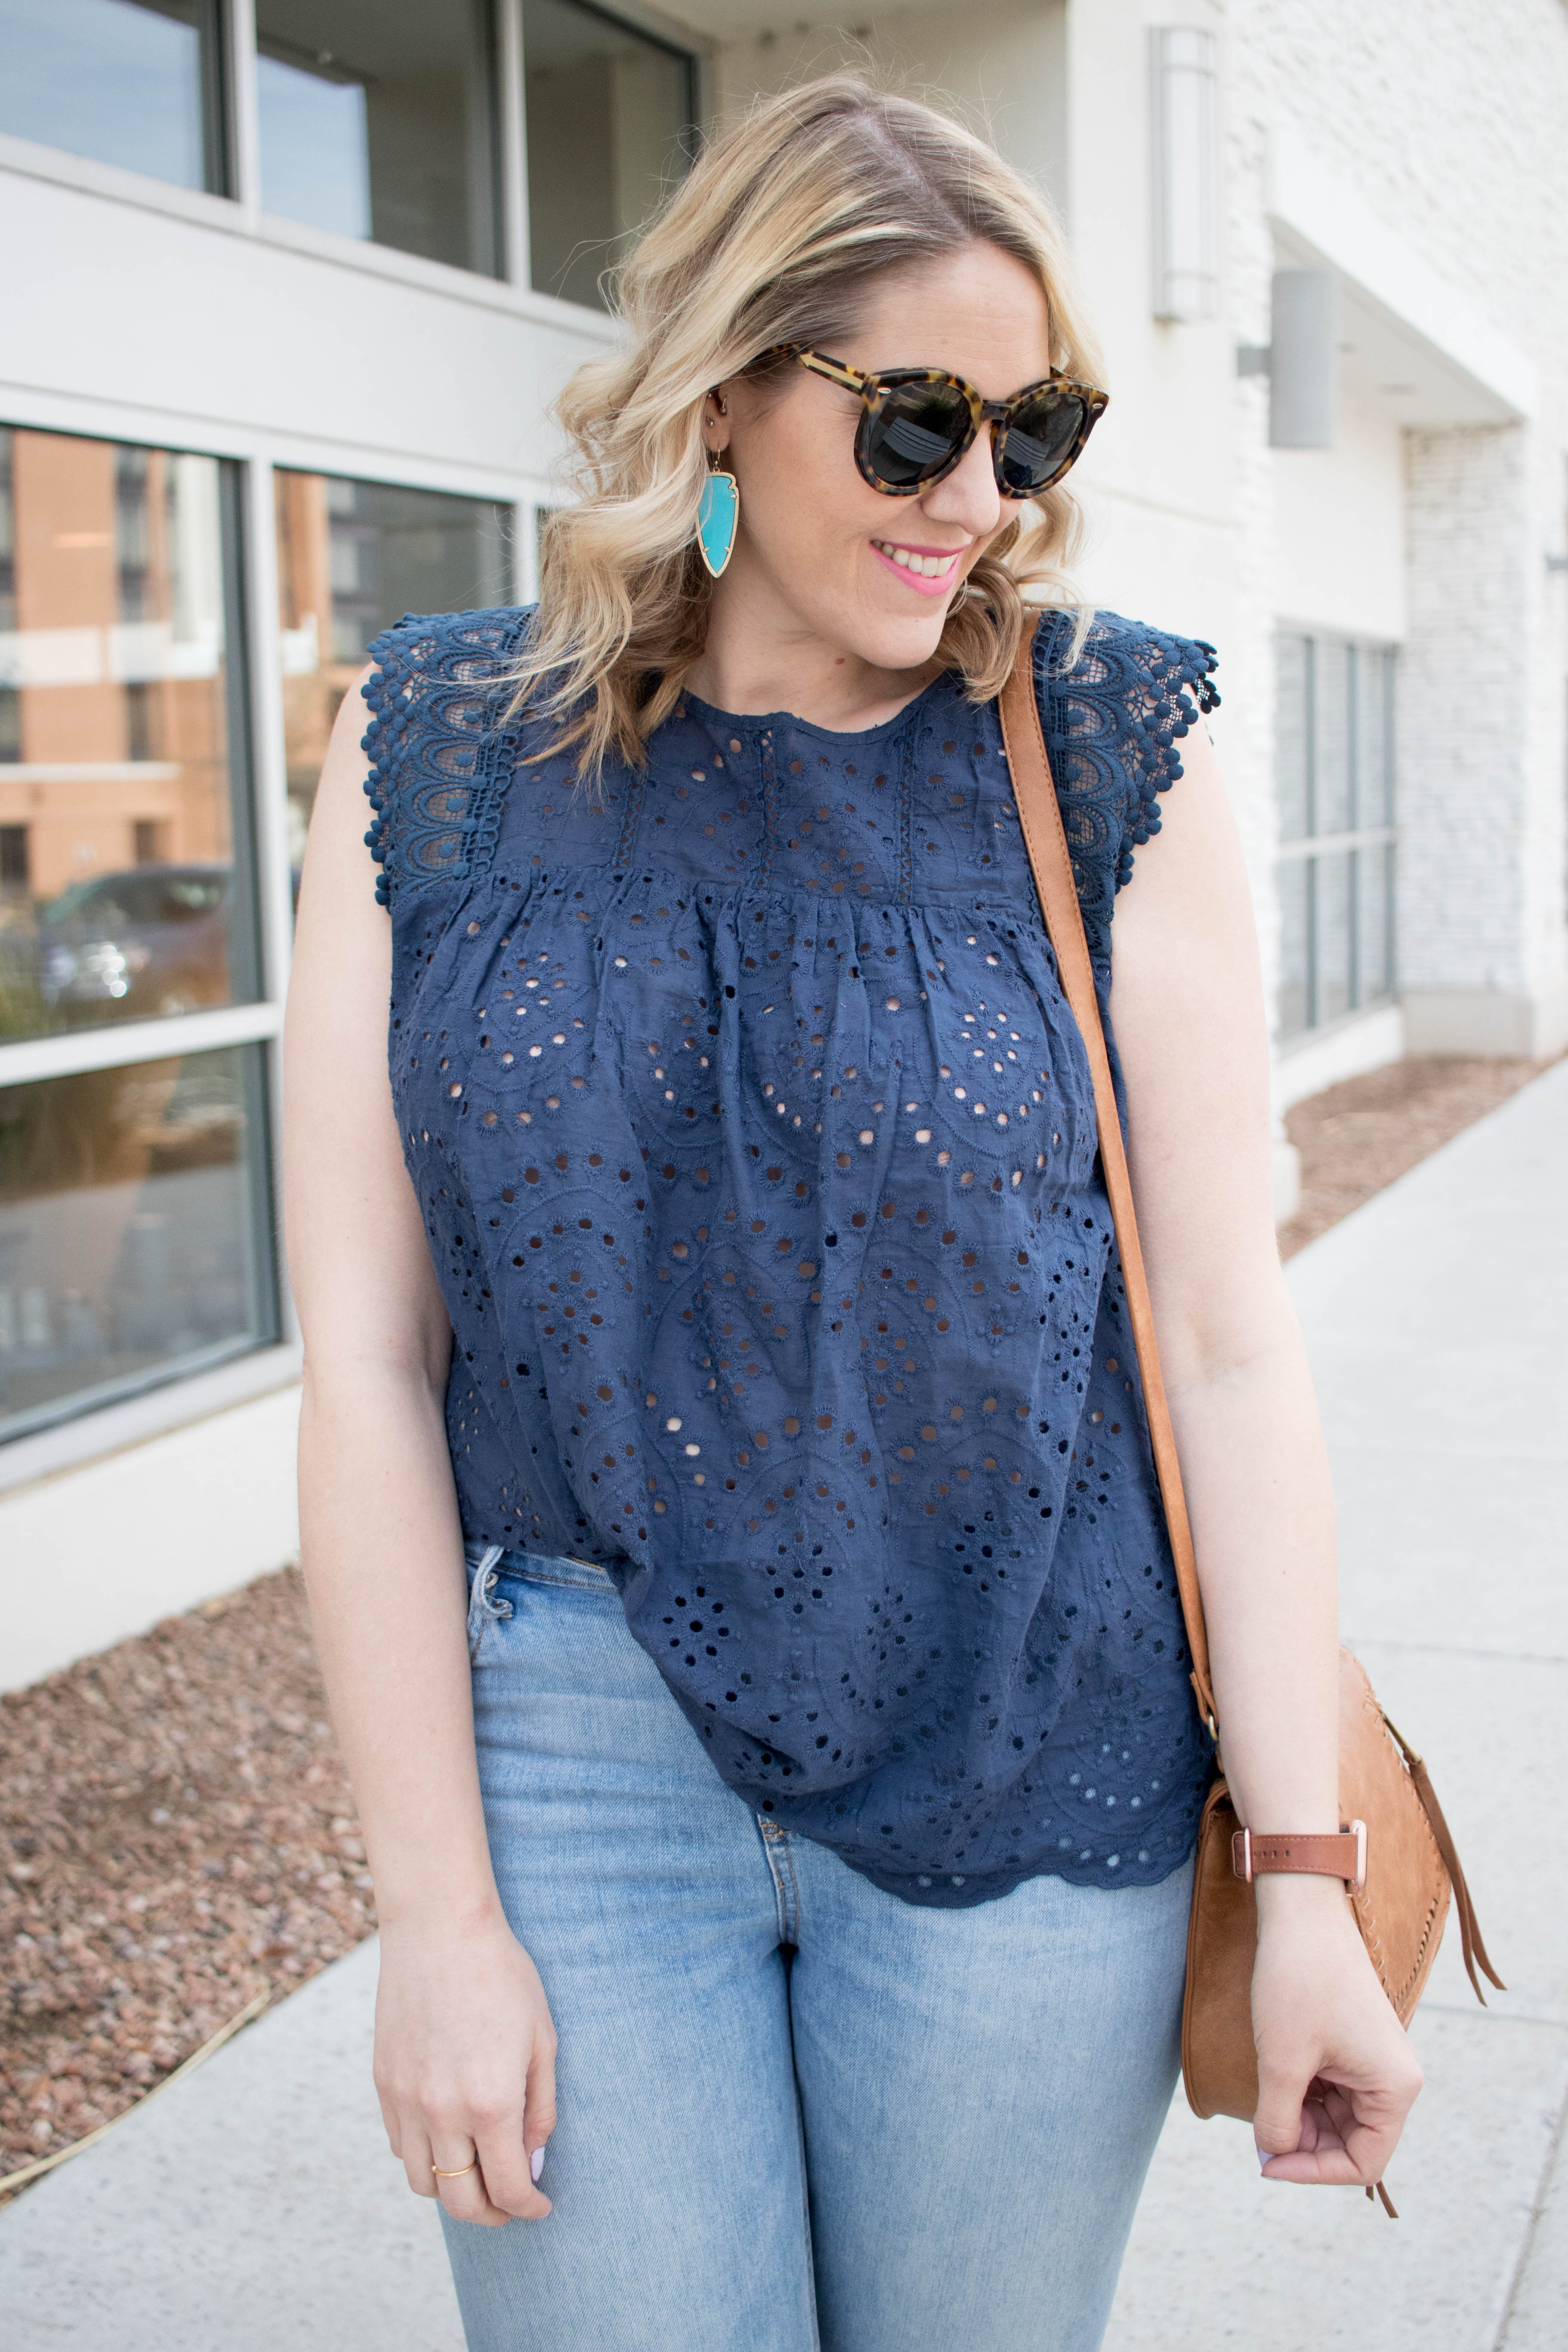 vici navy eyelet blouse for spring #vicidolls #eyelet #springoutfit